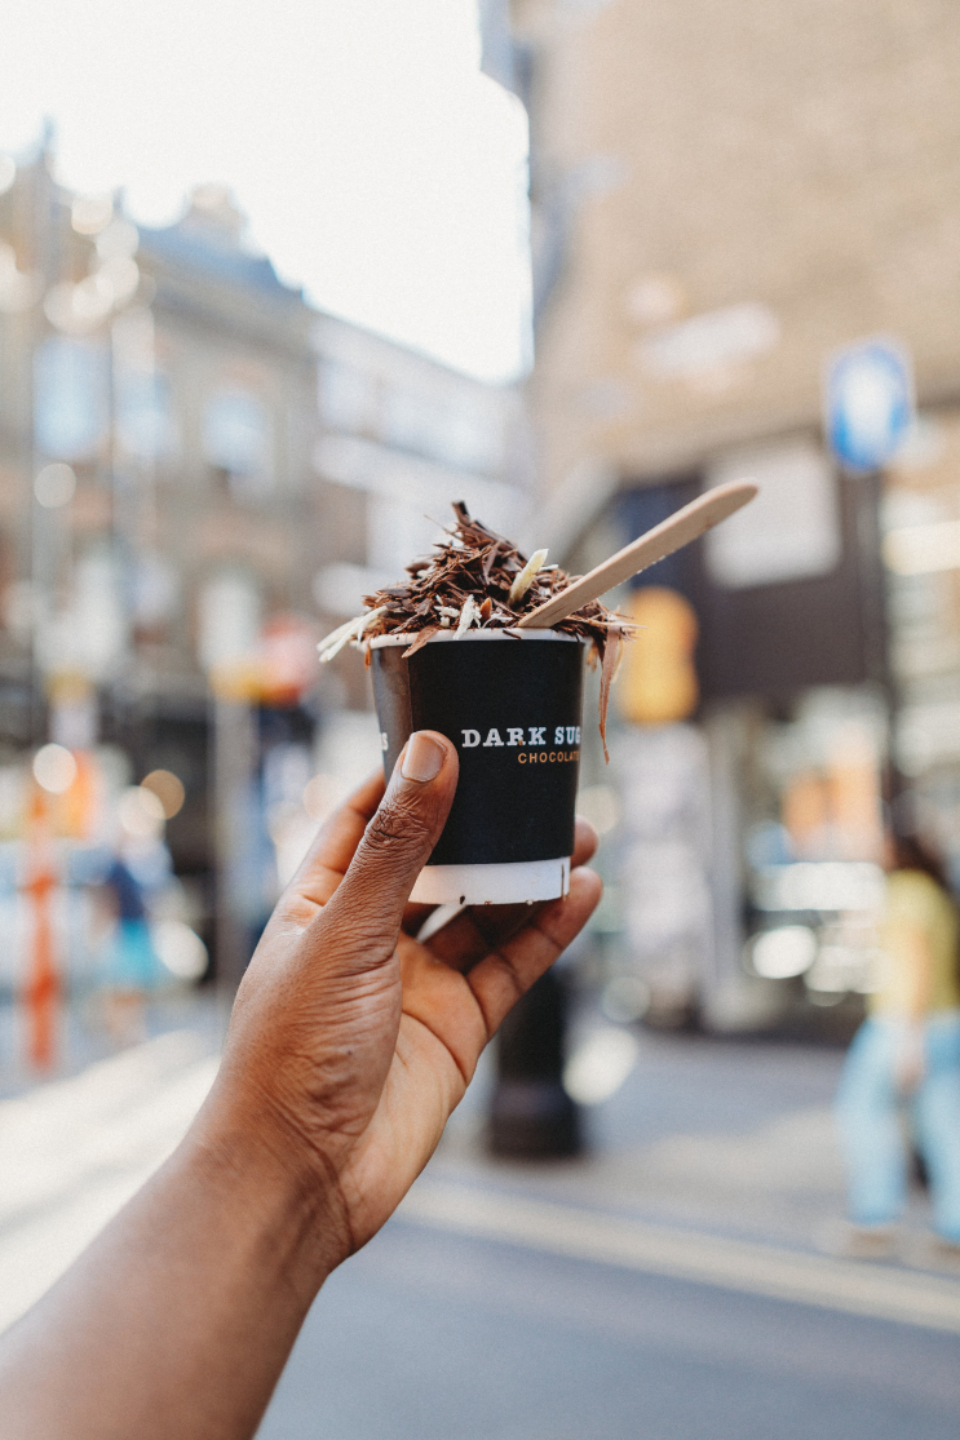 hand holding ice cream food dessert tasty chocolate snack city street nutrition bokeh delicious yummy people